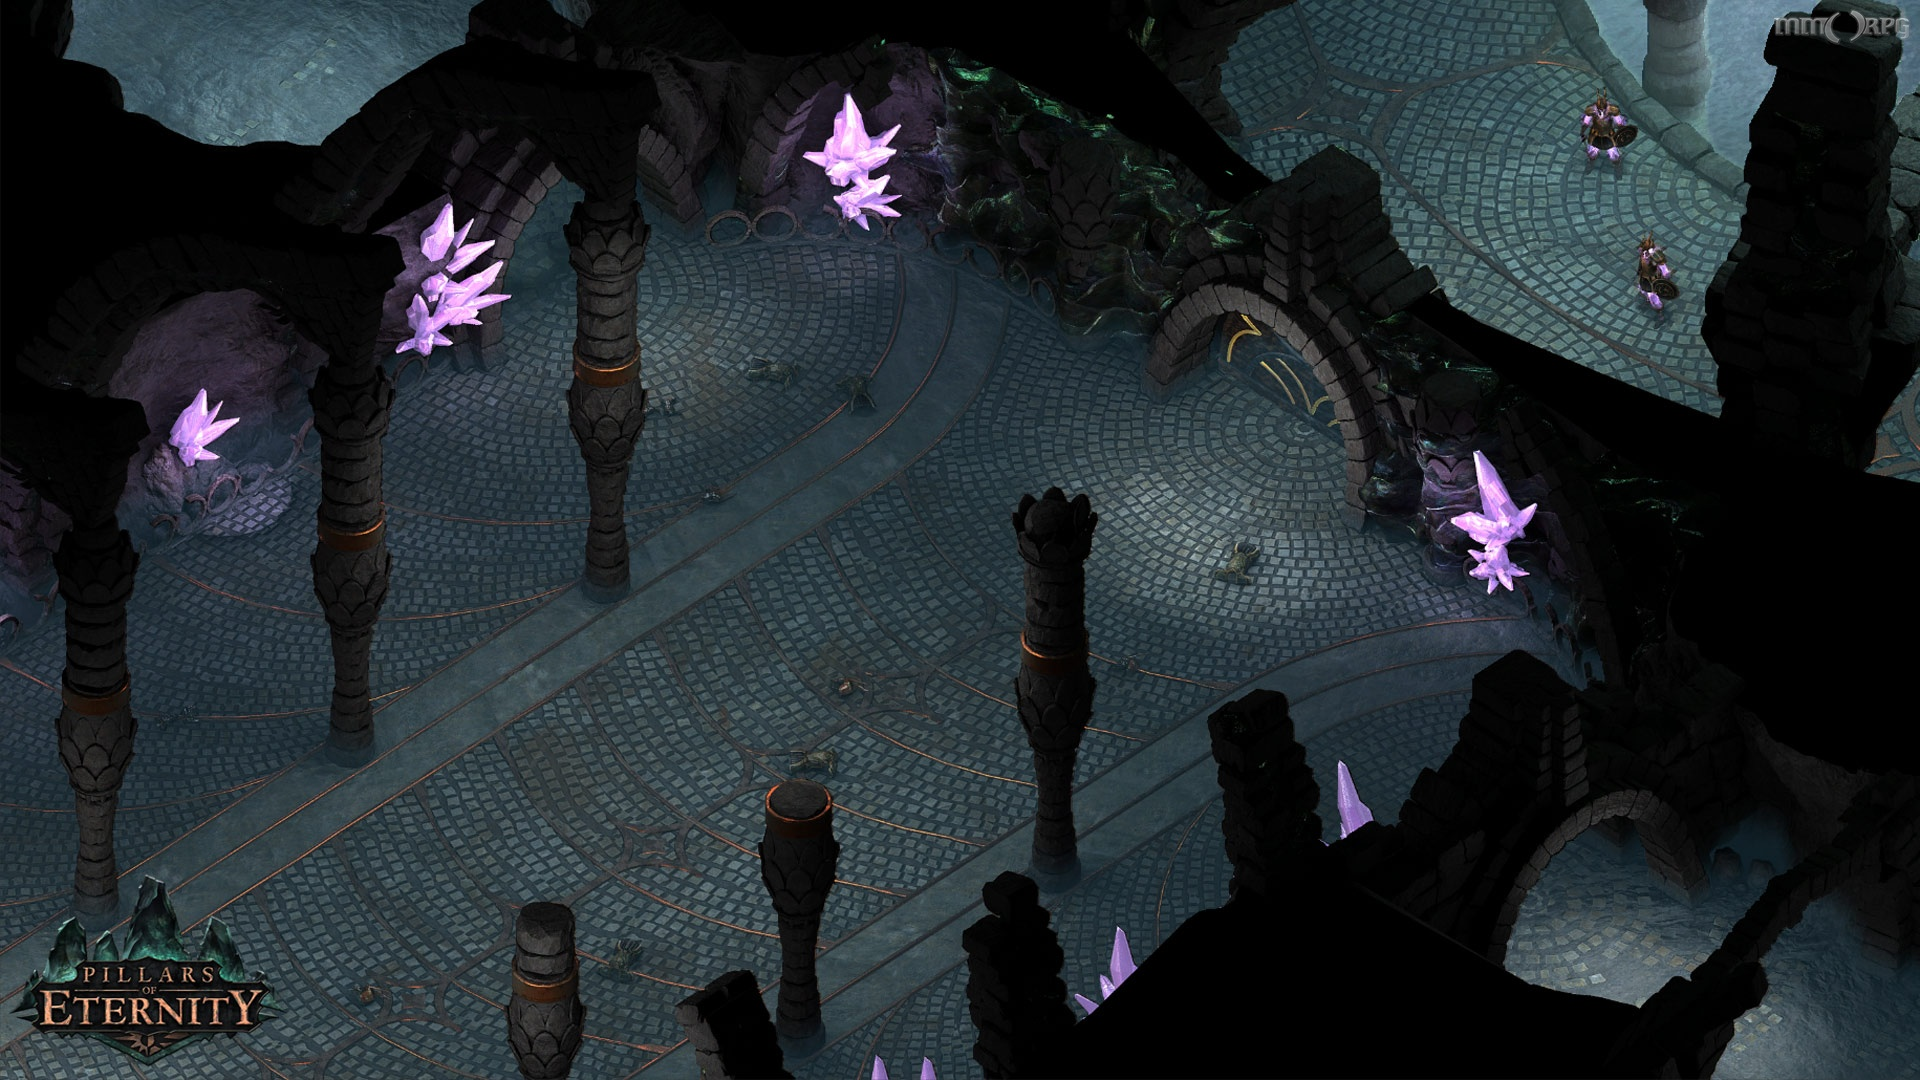 Pillars of Eternity is inspired by old-school RPGs and is a new IP.